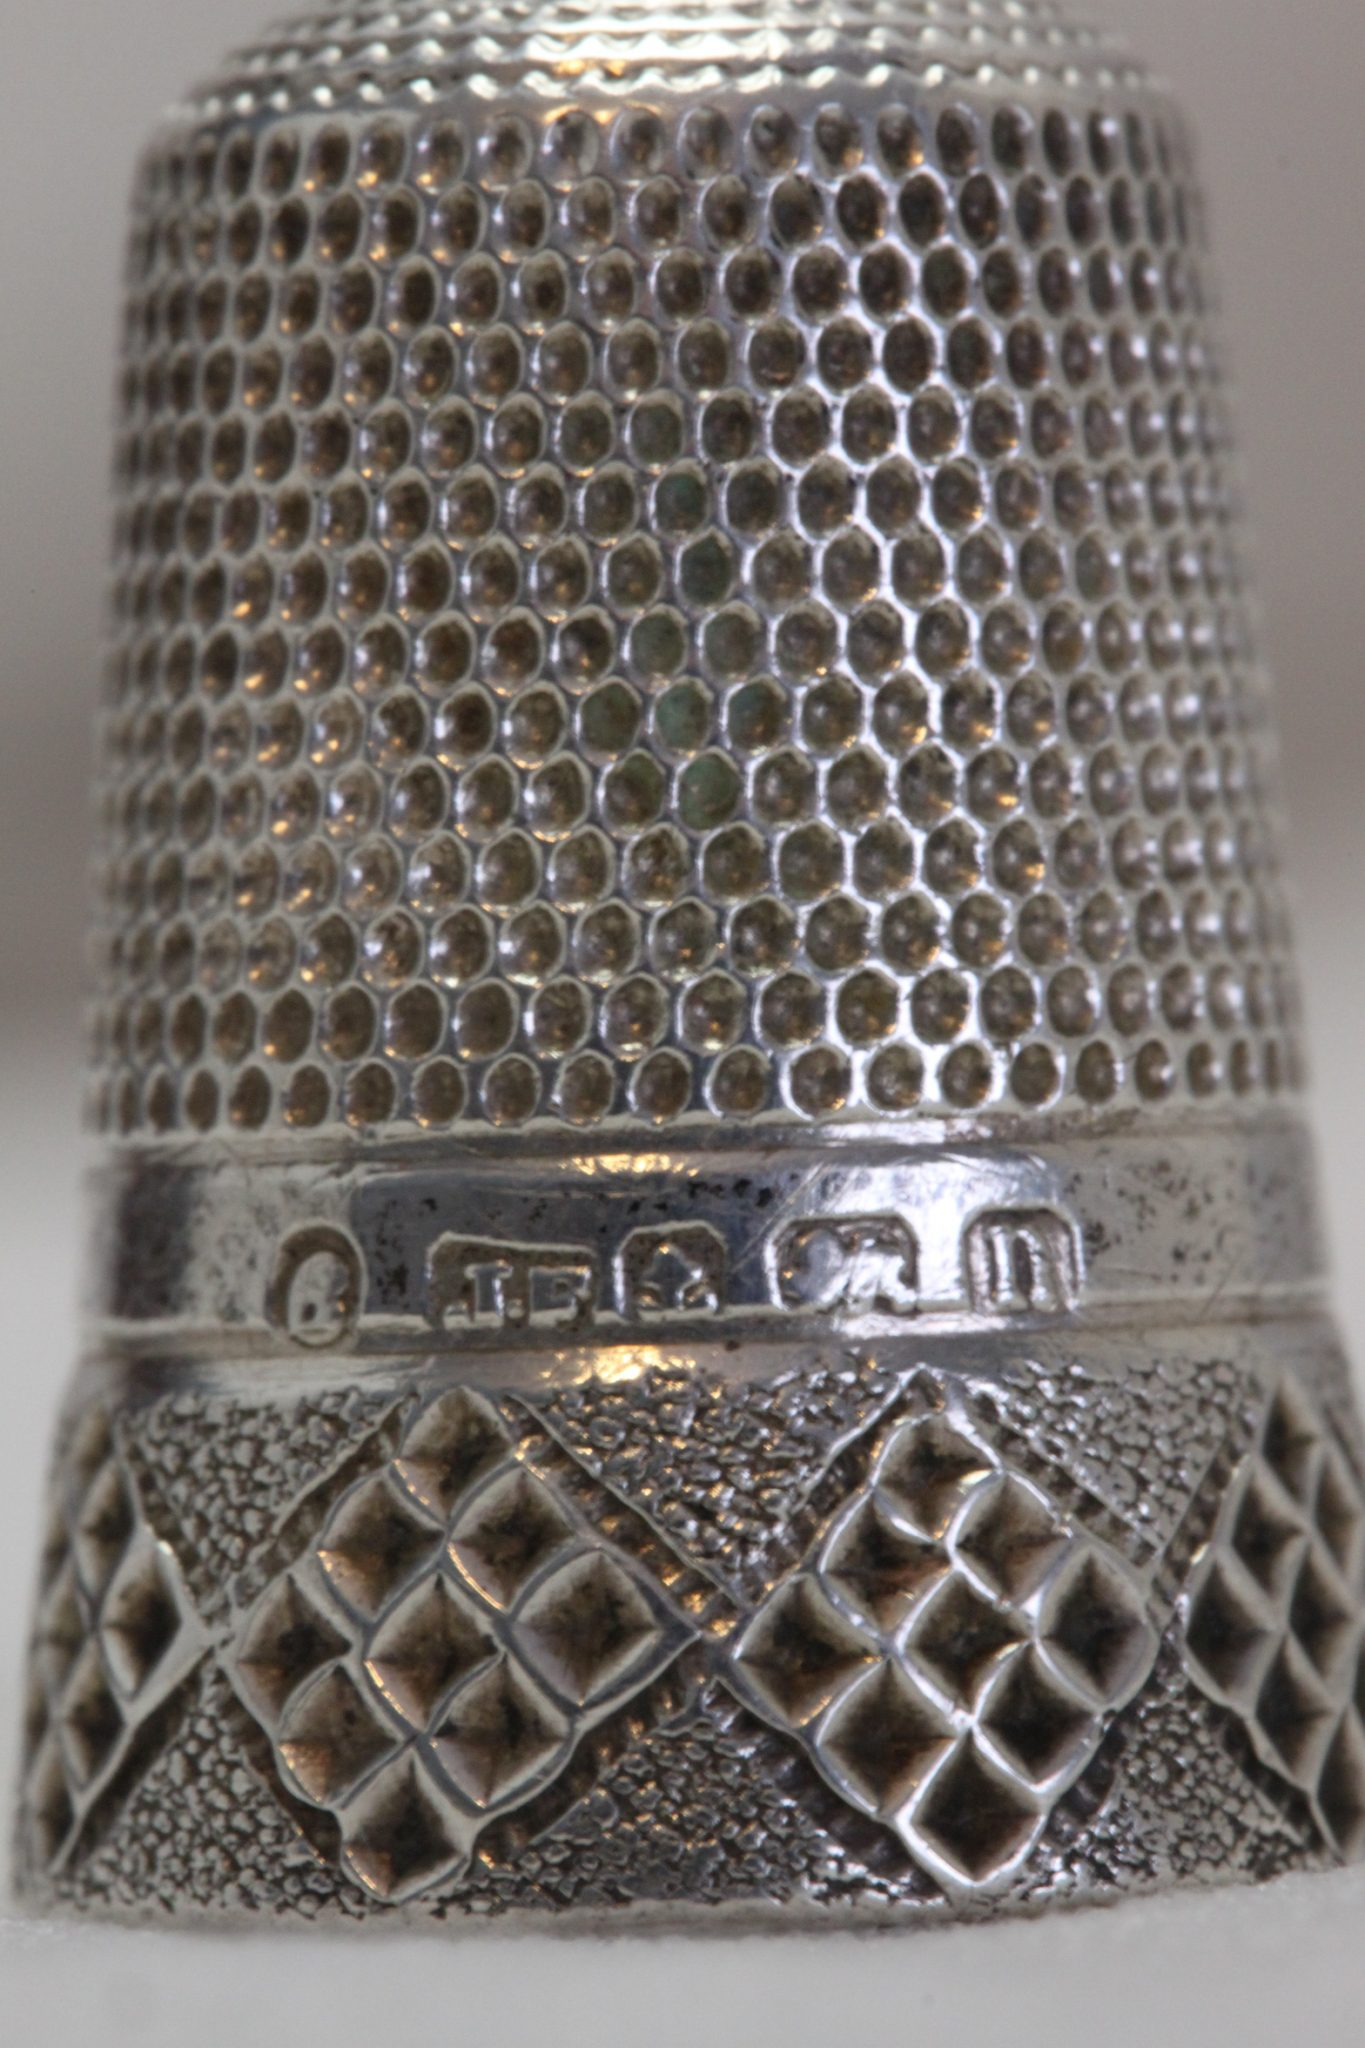 Sterling silver thimble by James Fenton, Birmingham 1912